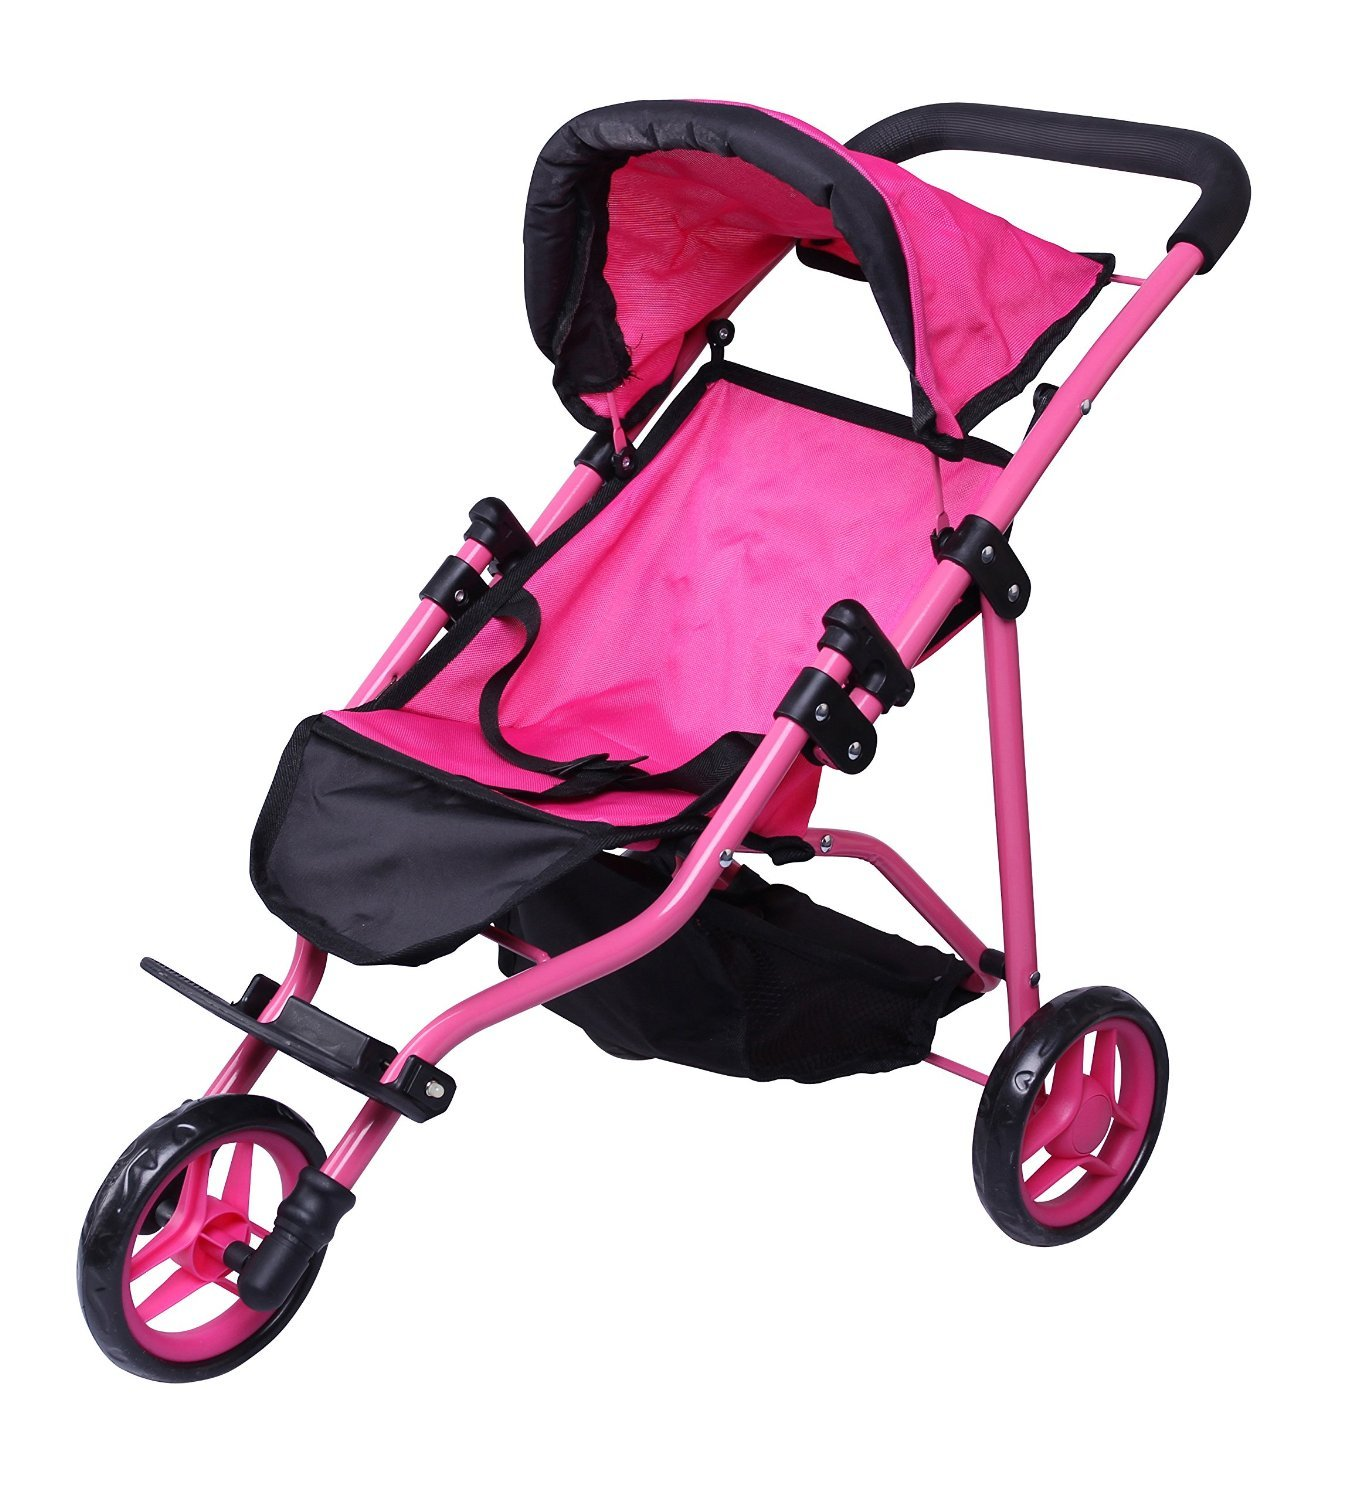 Precious Toys Jogger Hot Pink Doll Stroller, Black Foam Handles and Hot Pink Frame - 0129A by Precious toys